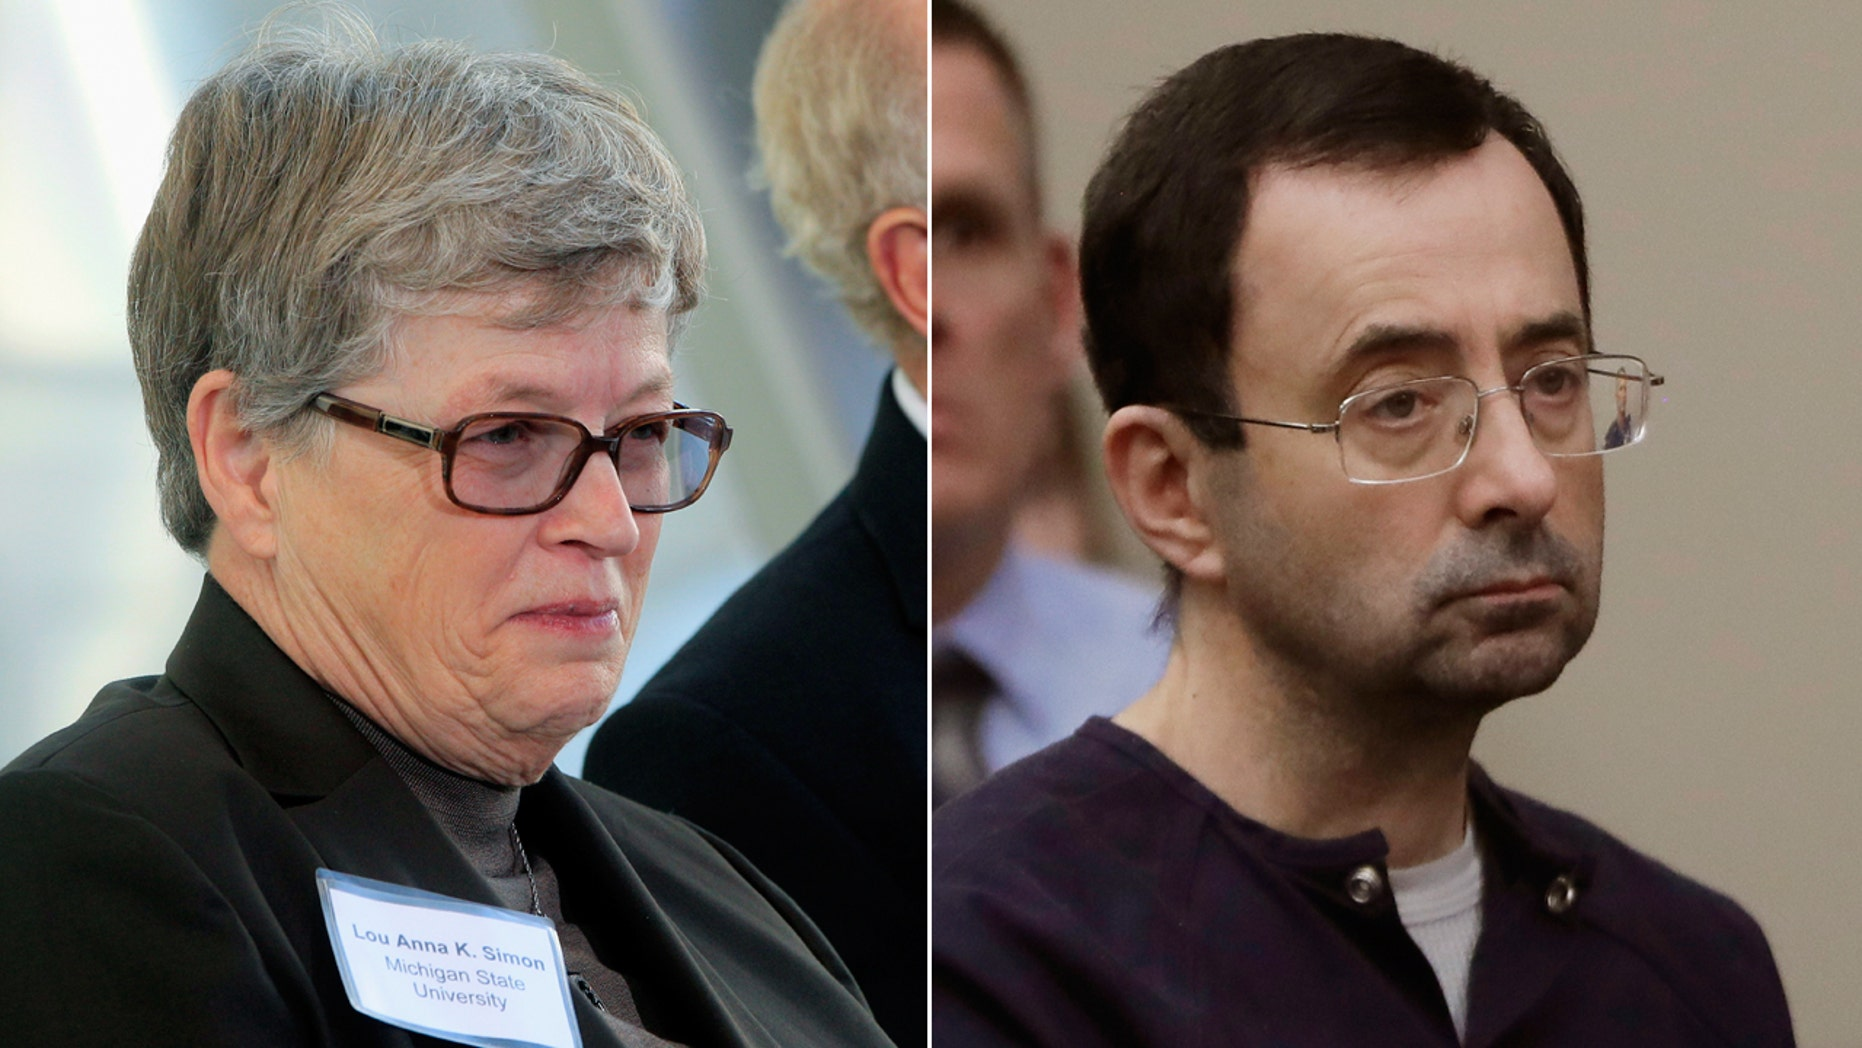 Lou Anna Simon, left, and Larry Nassar